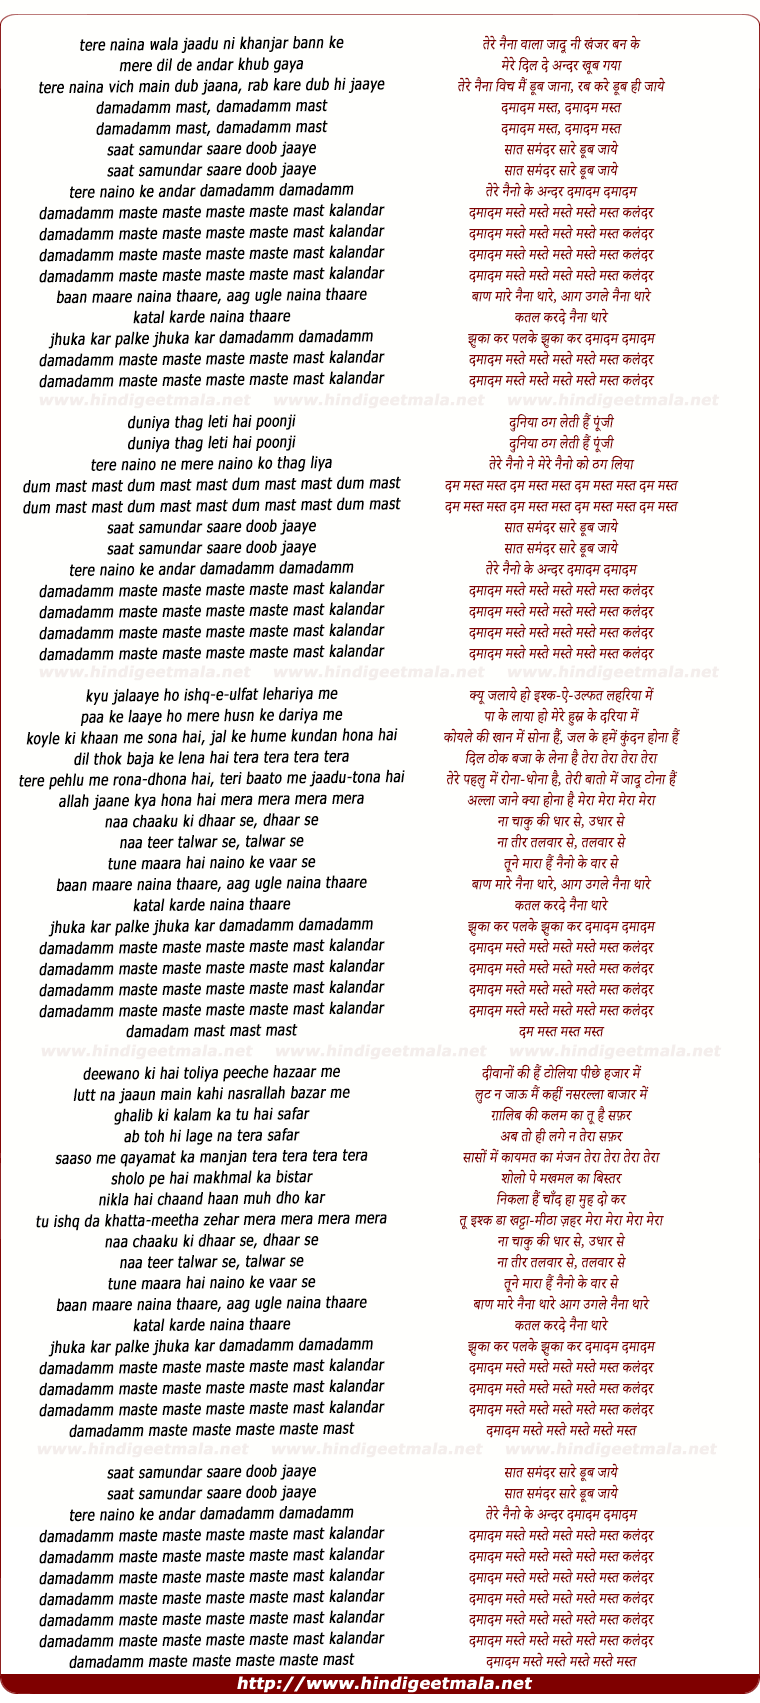 lyrics of song Damadamm Mast